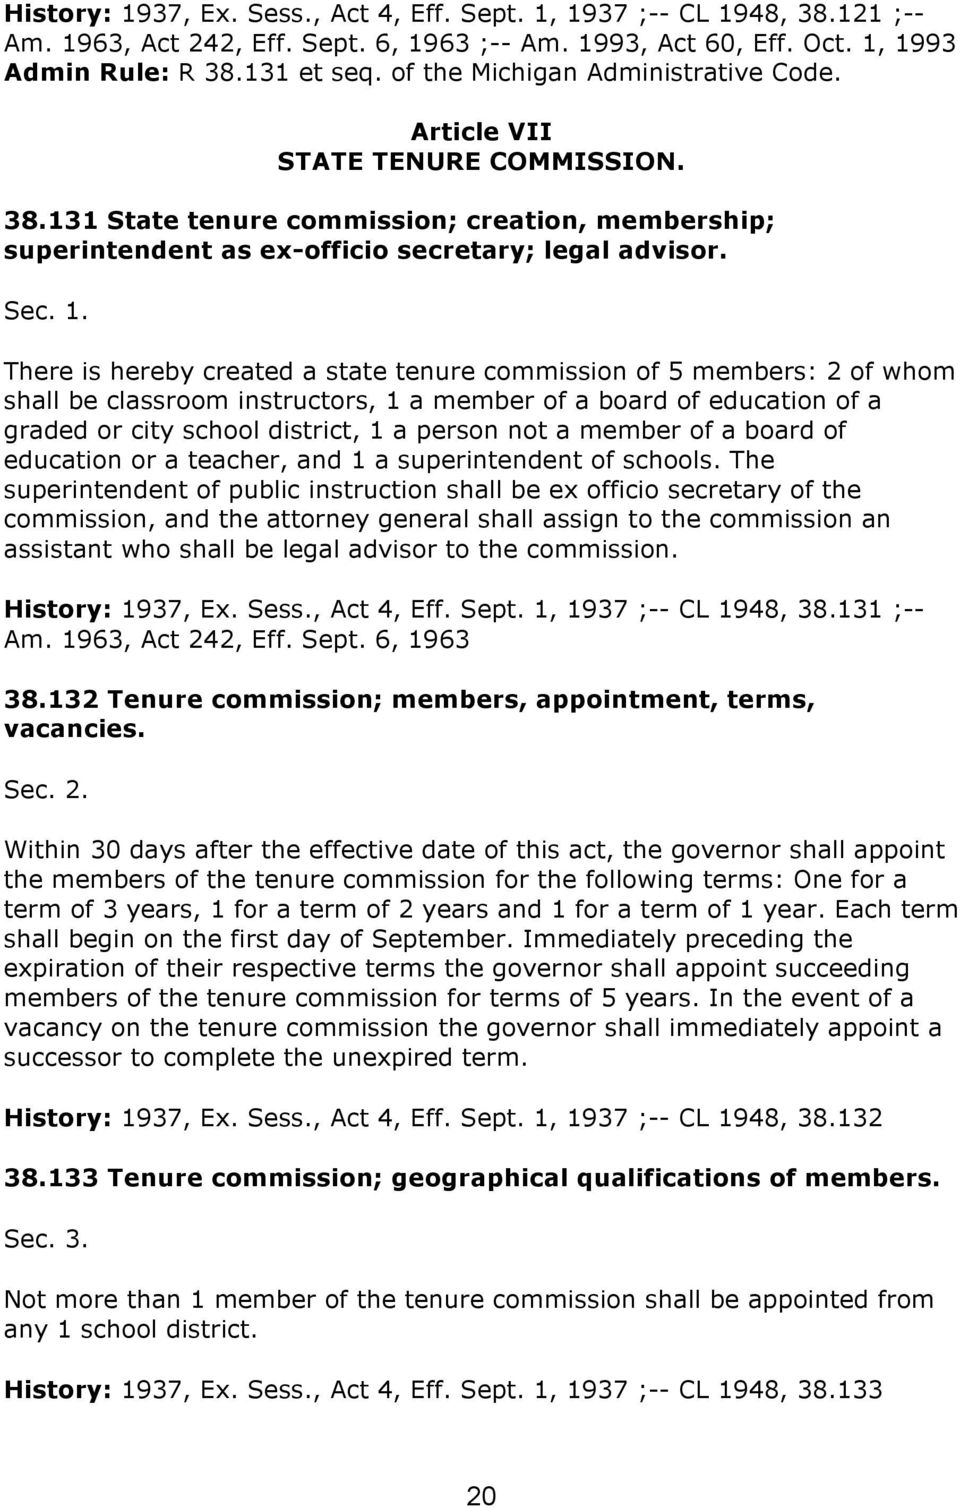 There is hereby created a state tenure commission of 5 members: 2 of whom shall be classroom instructors, 1 a member of a board of education of a graded or city school district, 1 a person not a